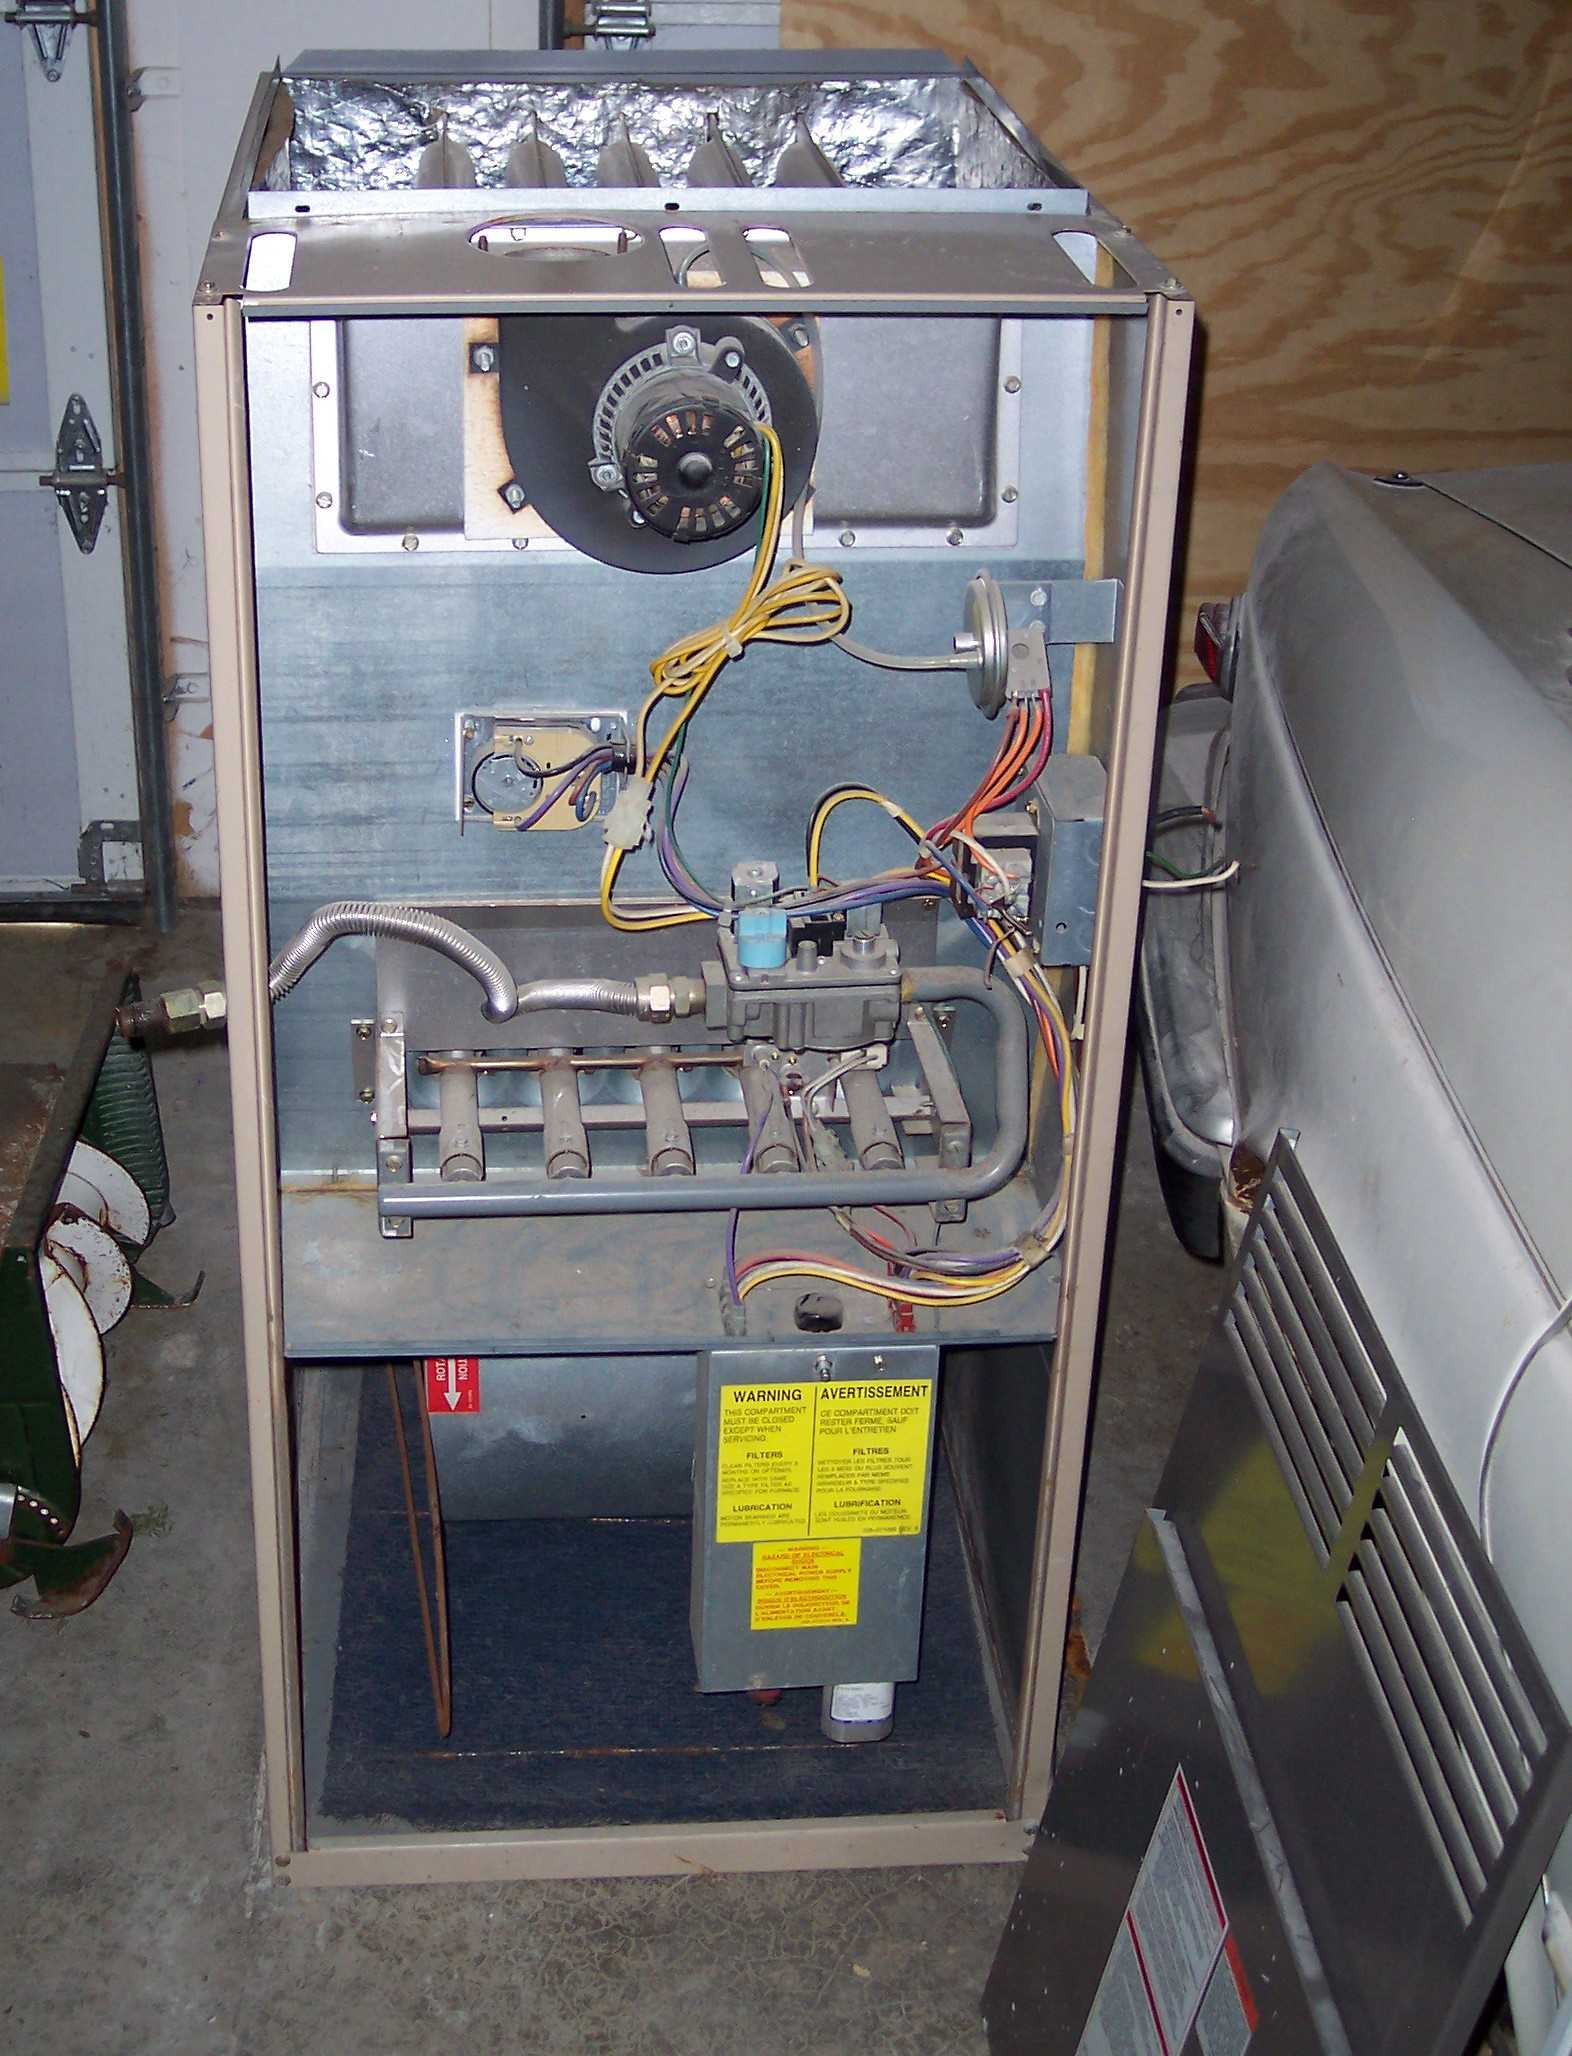 Watch also Carrier Furnace Limit Switch Location further 7C 7C  ebookhall   7Cimages 7CPDF Preview Bryant Gas Heater User Manual For Bryant 584B Gas Heater together with Furnace in addition Condensing Boilers Furnaces. on trane furnace filter location